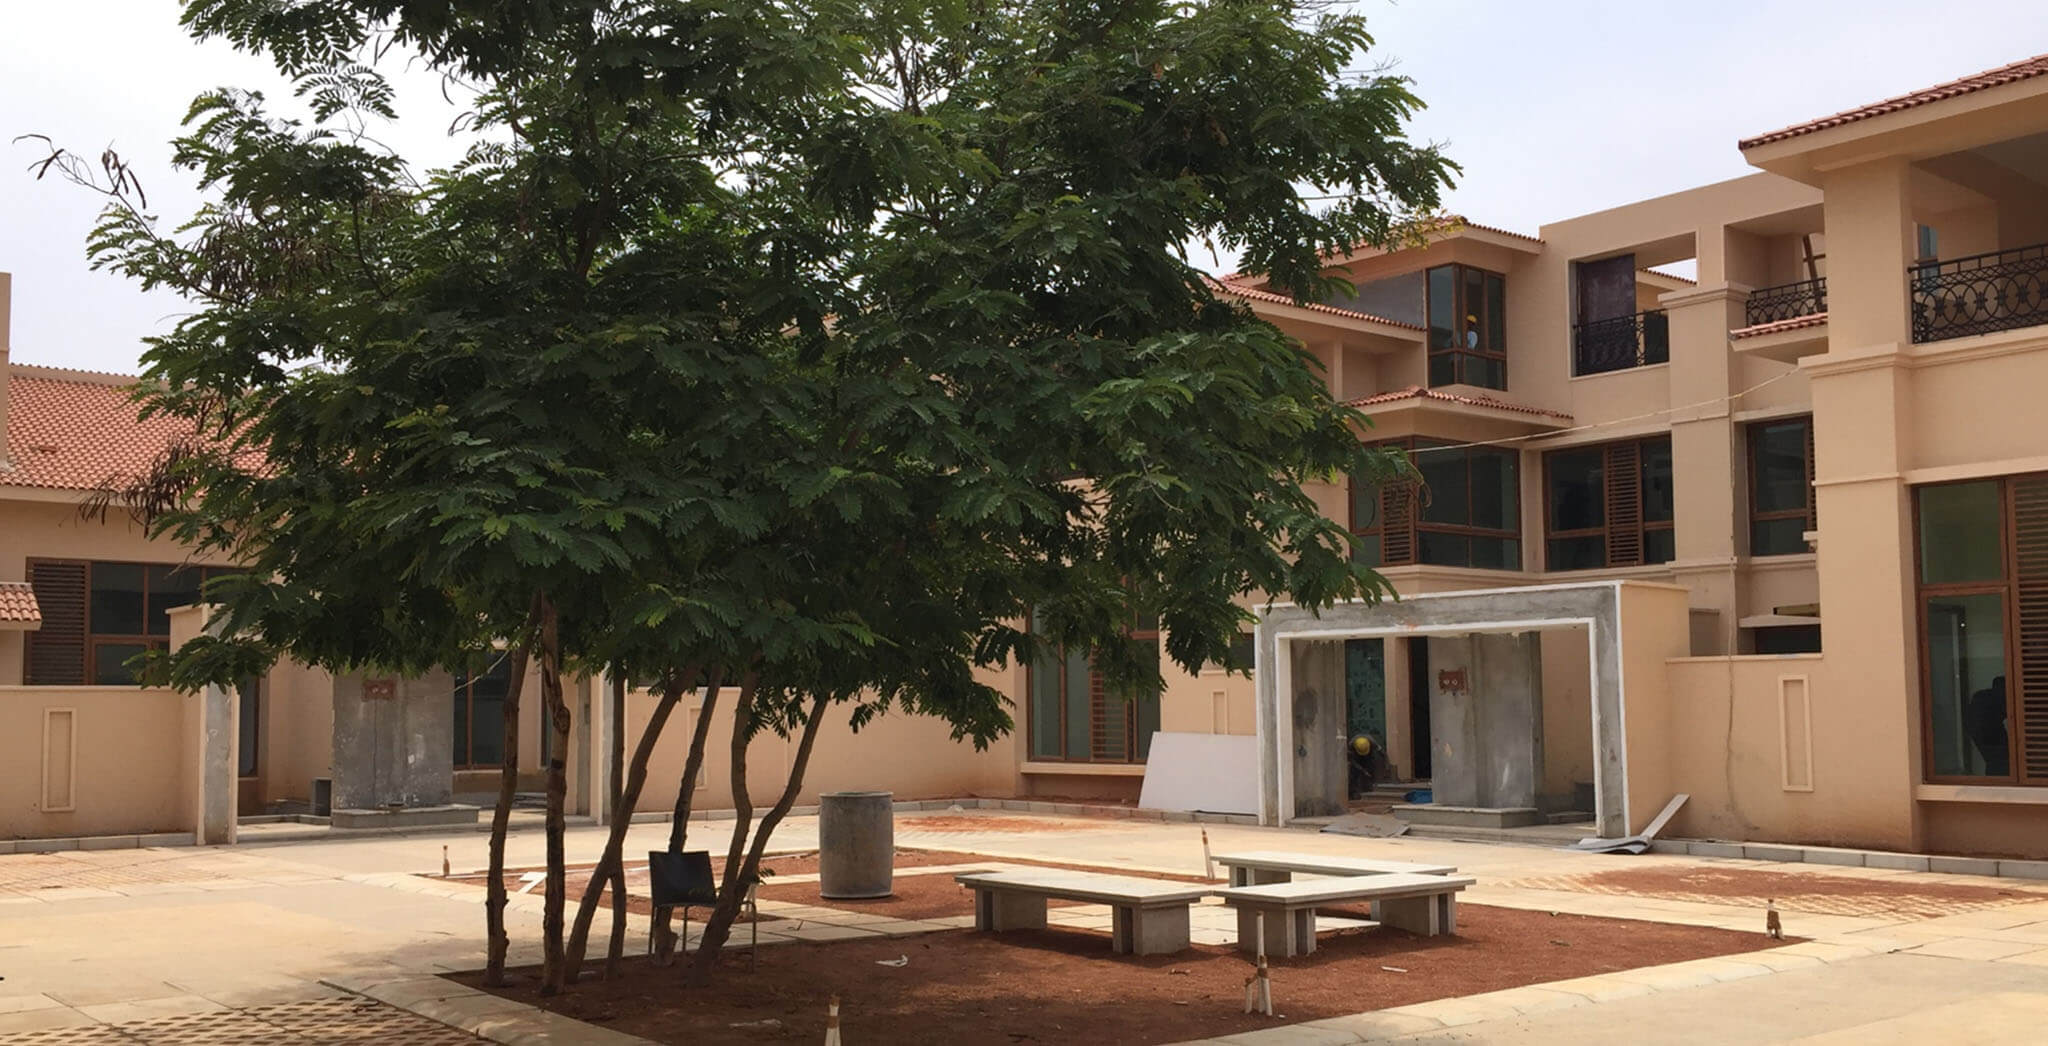 Apr 2019 - B-cluster: External Hard finishing works completed